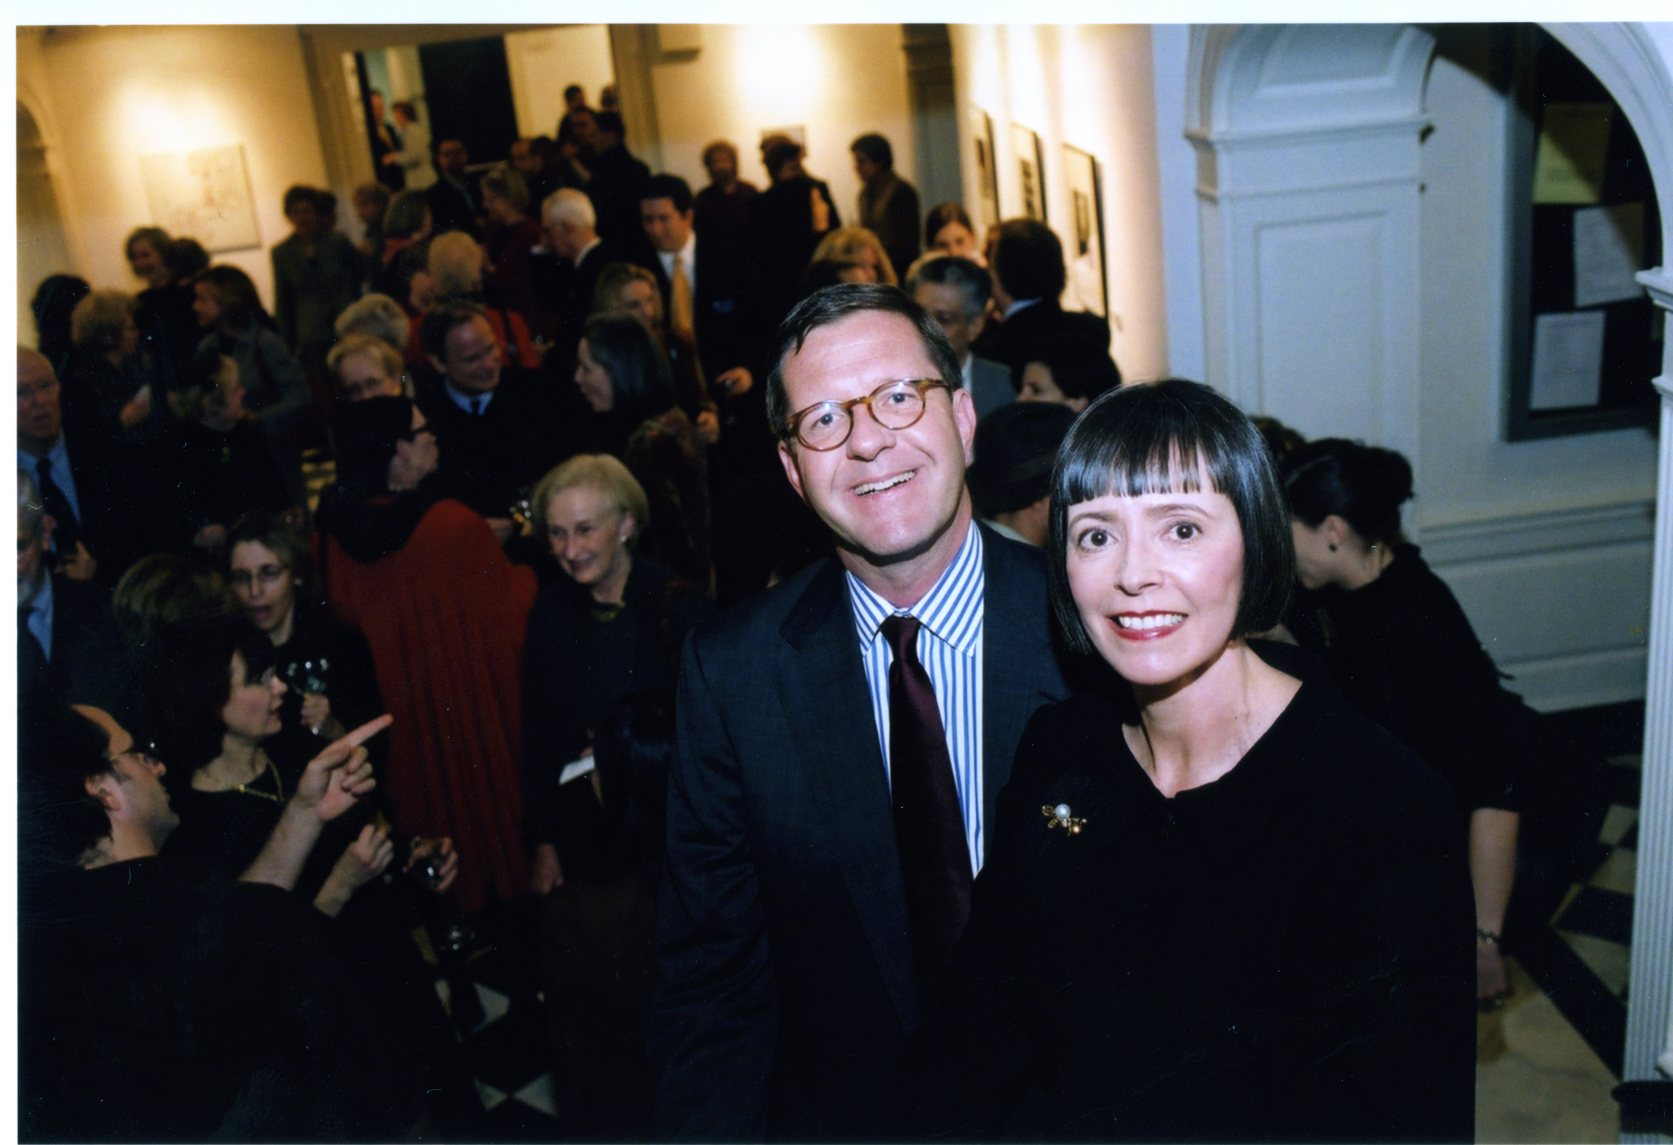 Carl and Marsha Hewitt at opening of gallery they donated, November 18, 2004